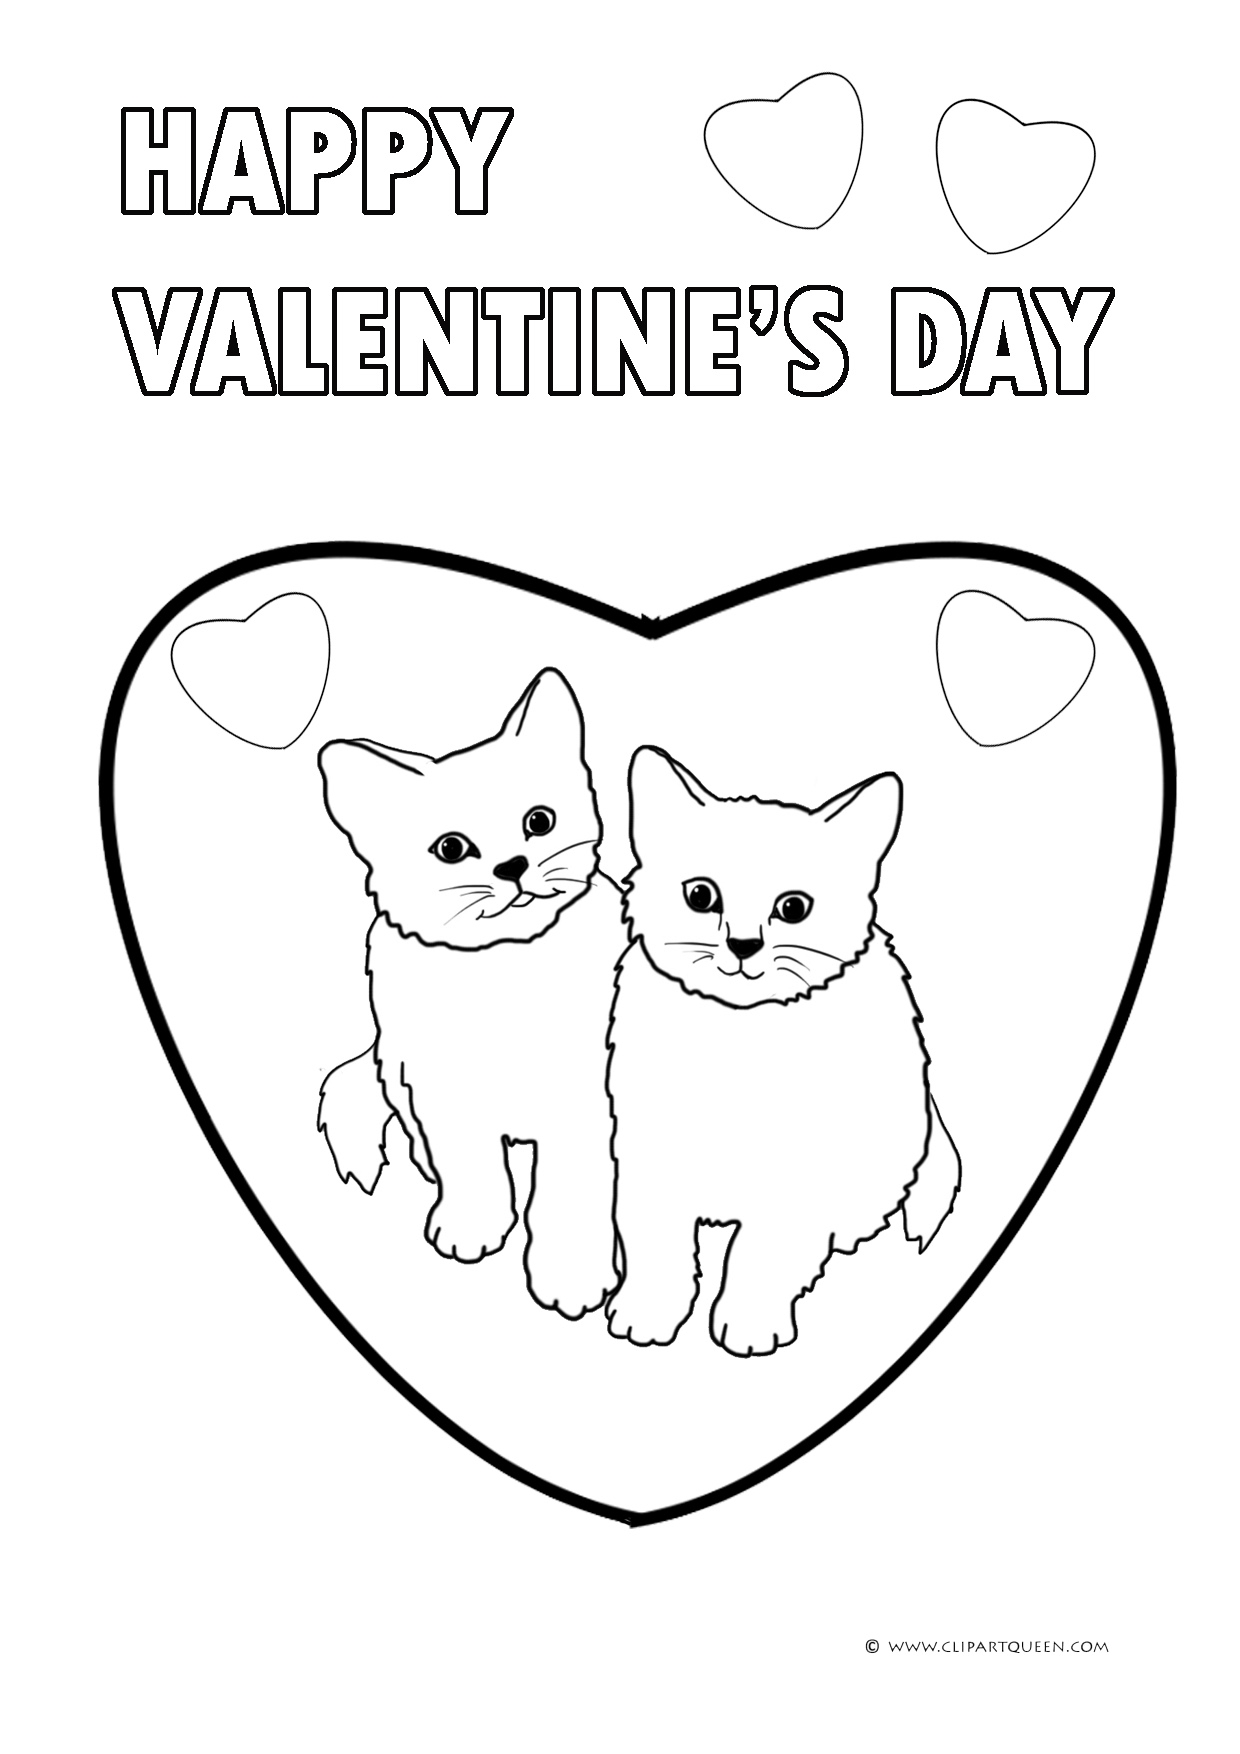 Valentine Coloring Pages to Print - 11 Valentine S Day Coloring Pages